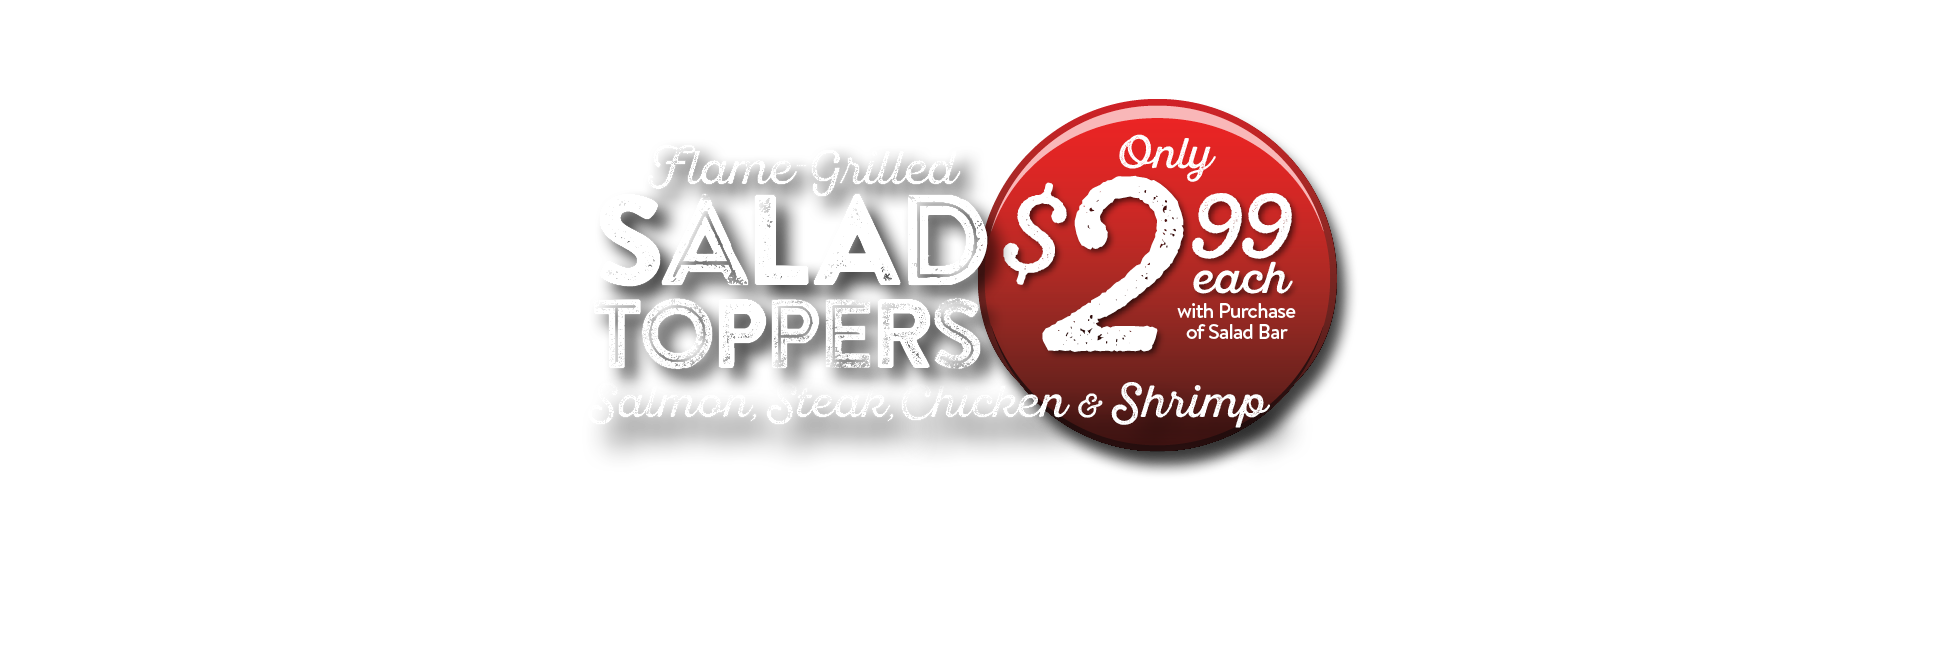 $2.99 Salad Toppers